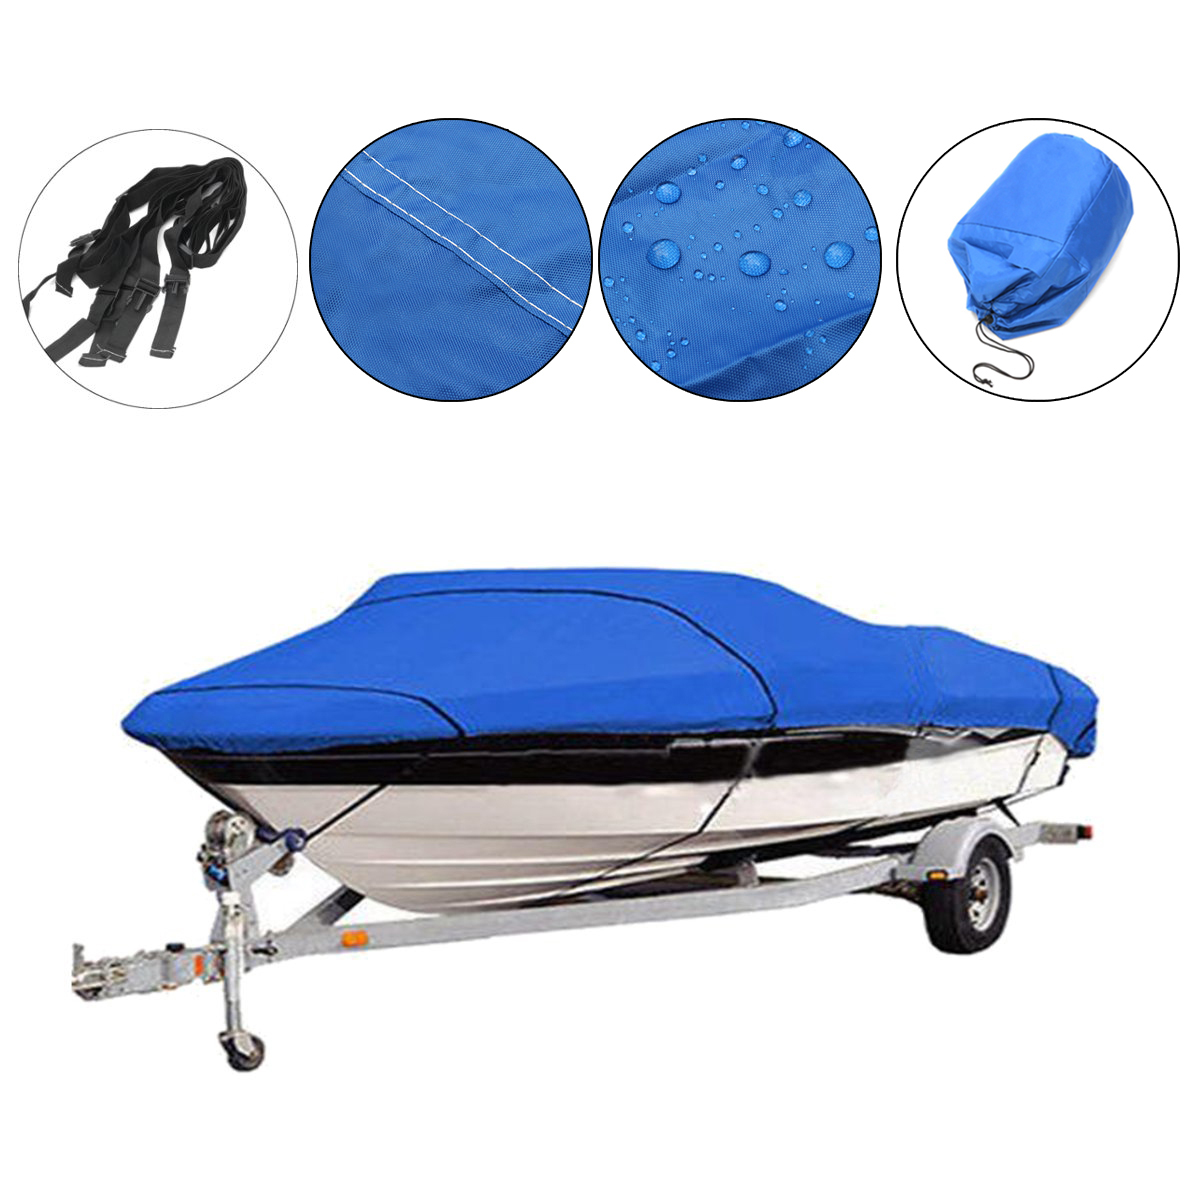 Fishing/Ski/Boat Cover Heavy Duty Trailerable 17 18 19ft beam 95inch 210D Blue Rectangle Waterproof UV protected